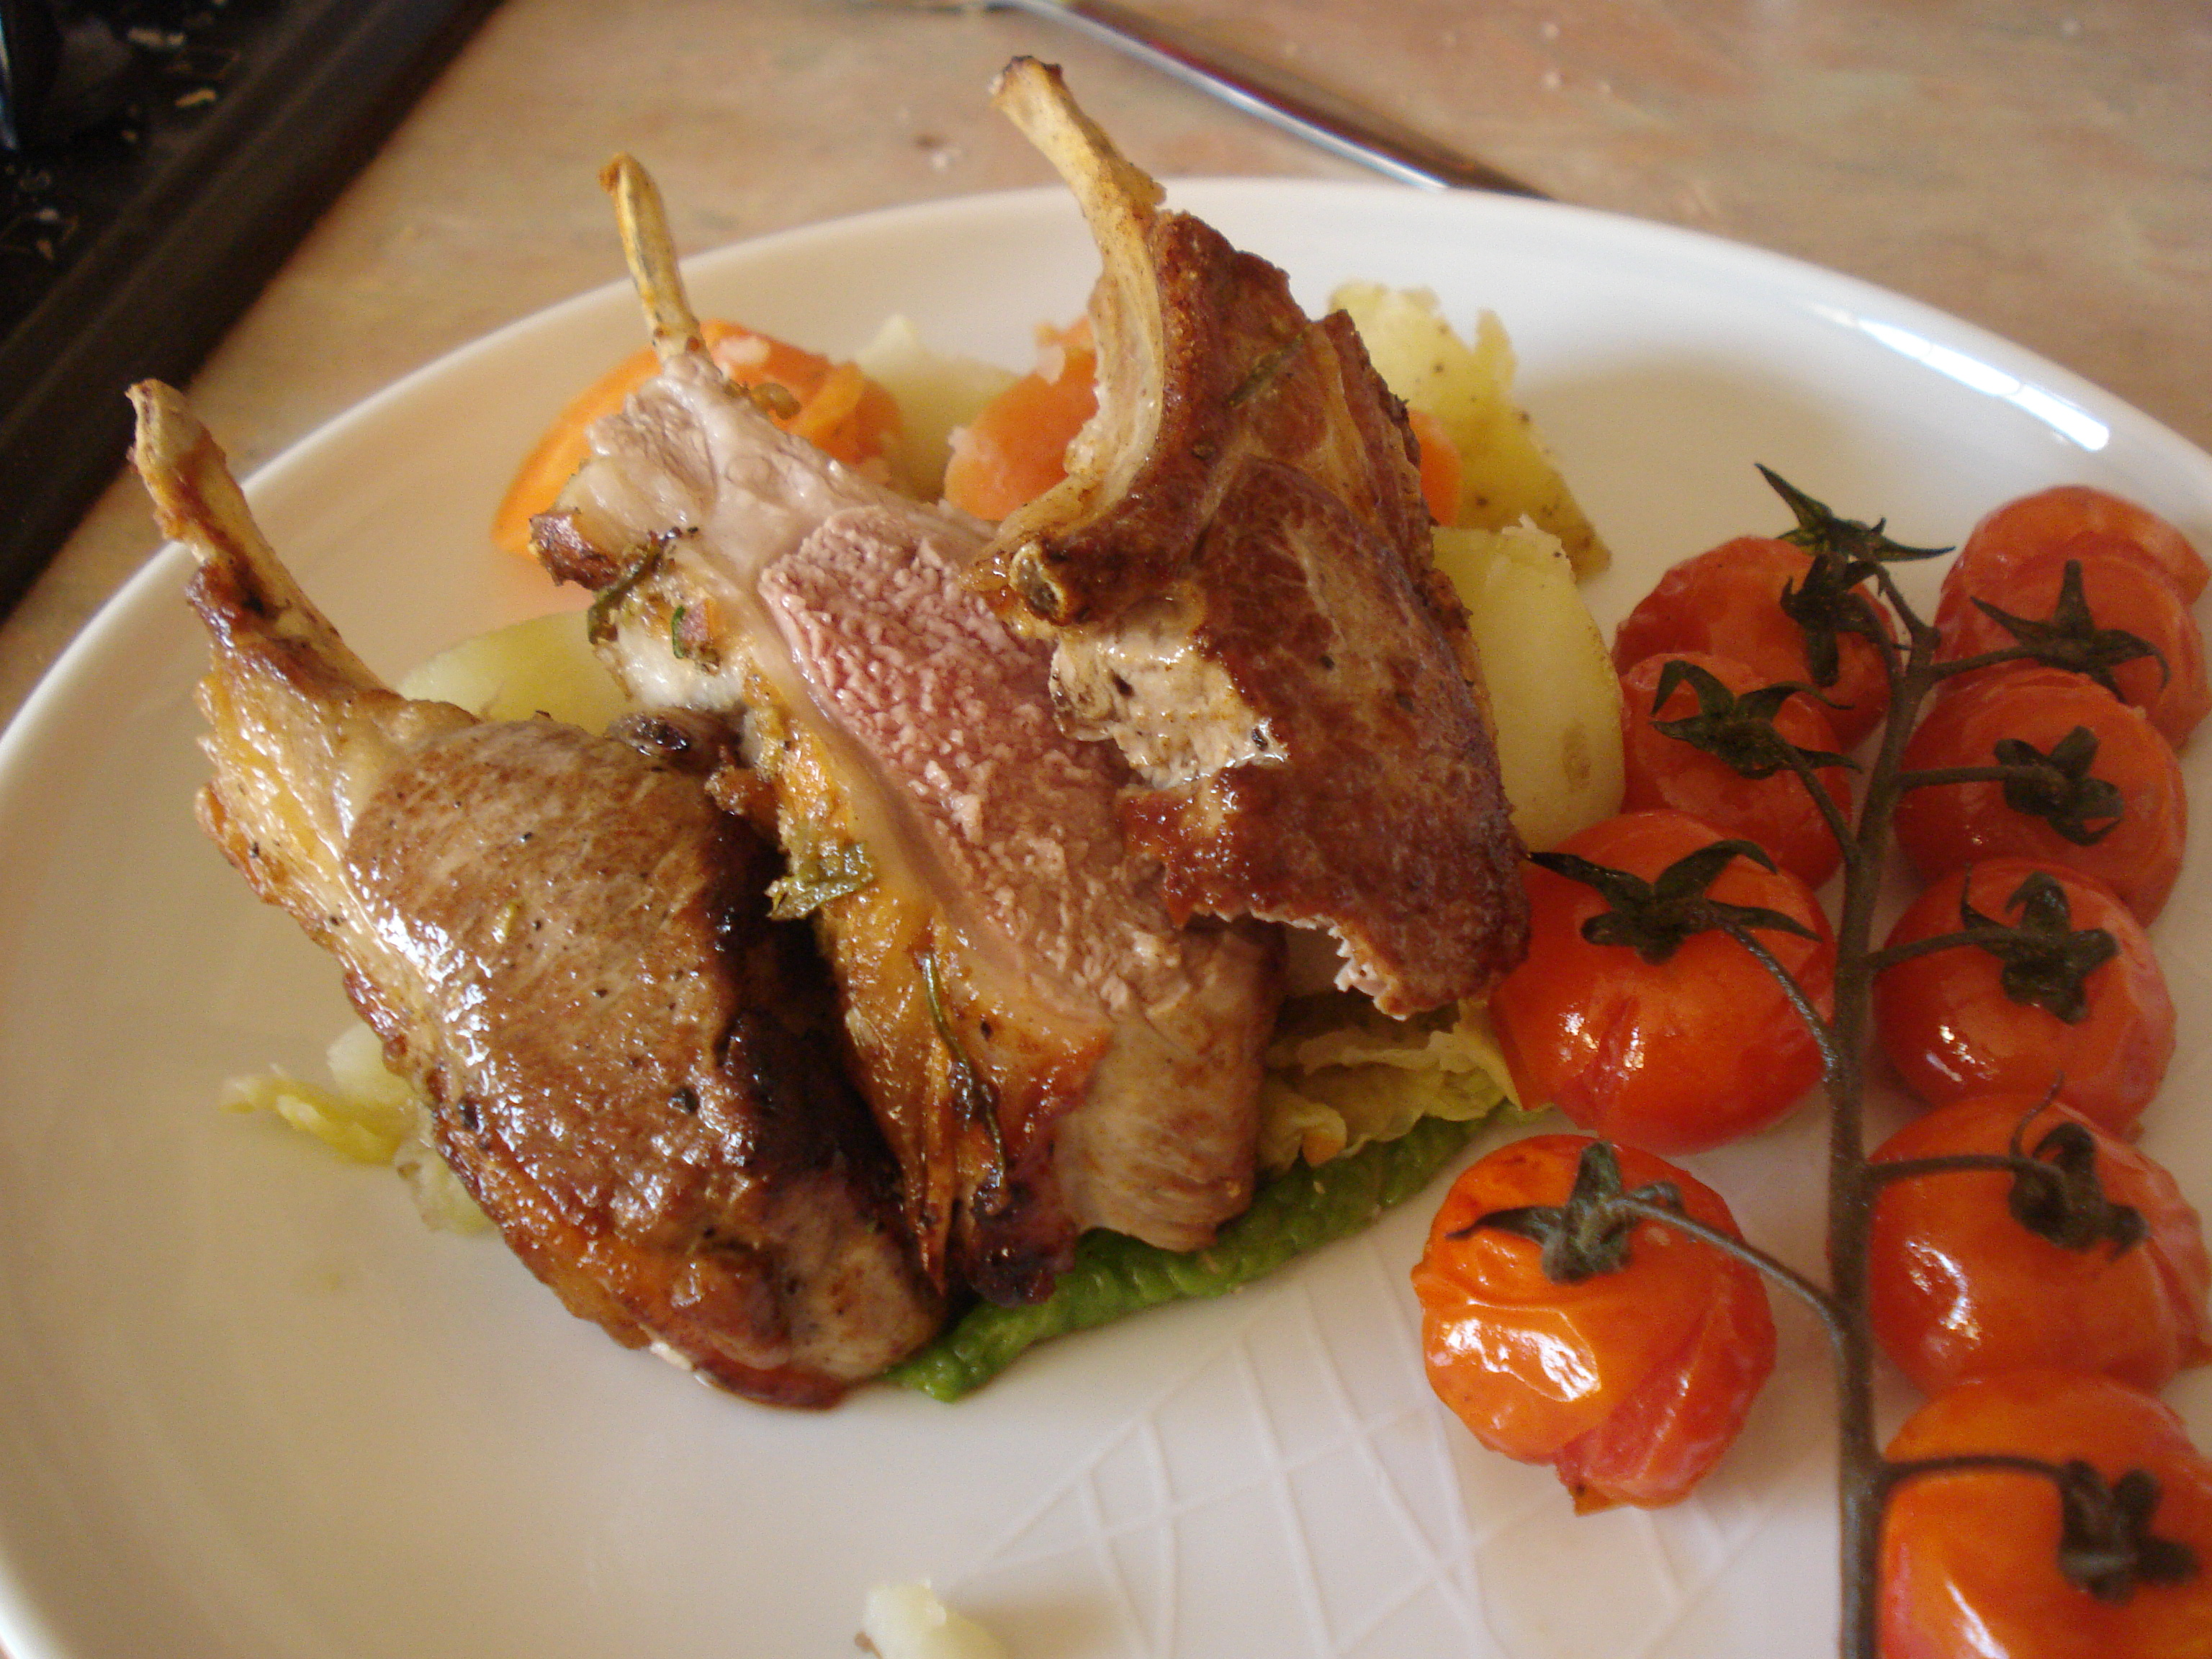 spring lamb, vegetable platter, mint sauce with chianti gravy